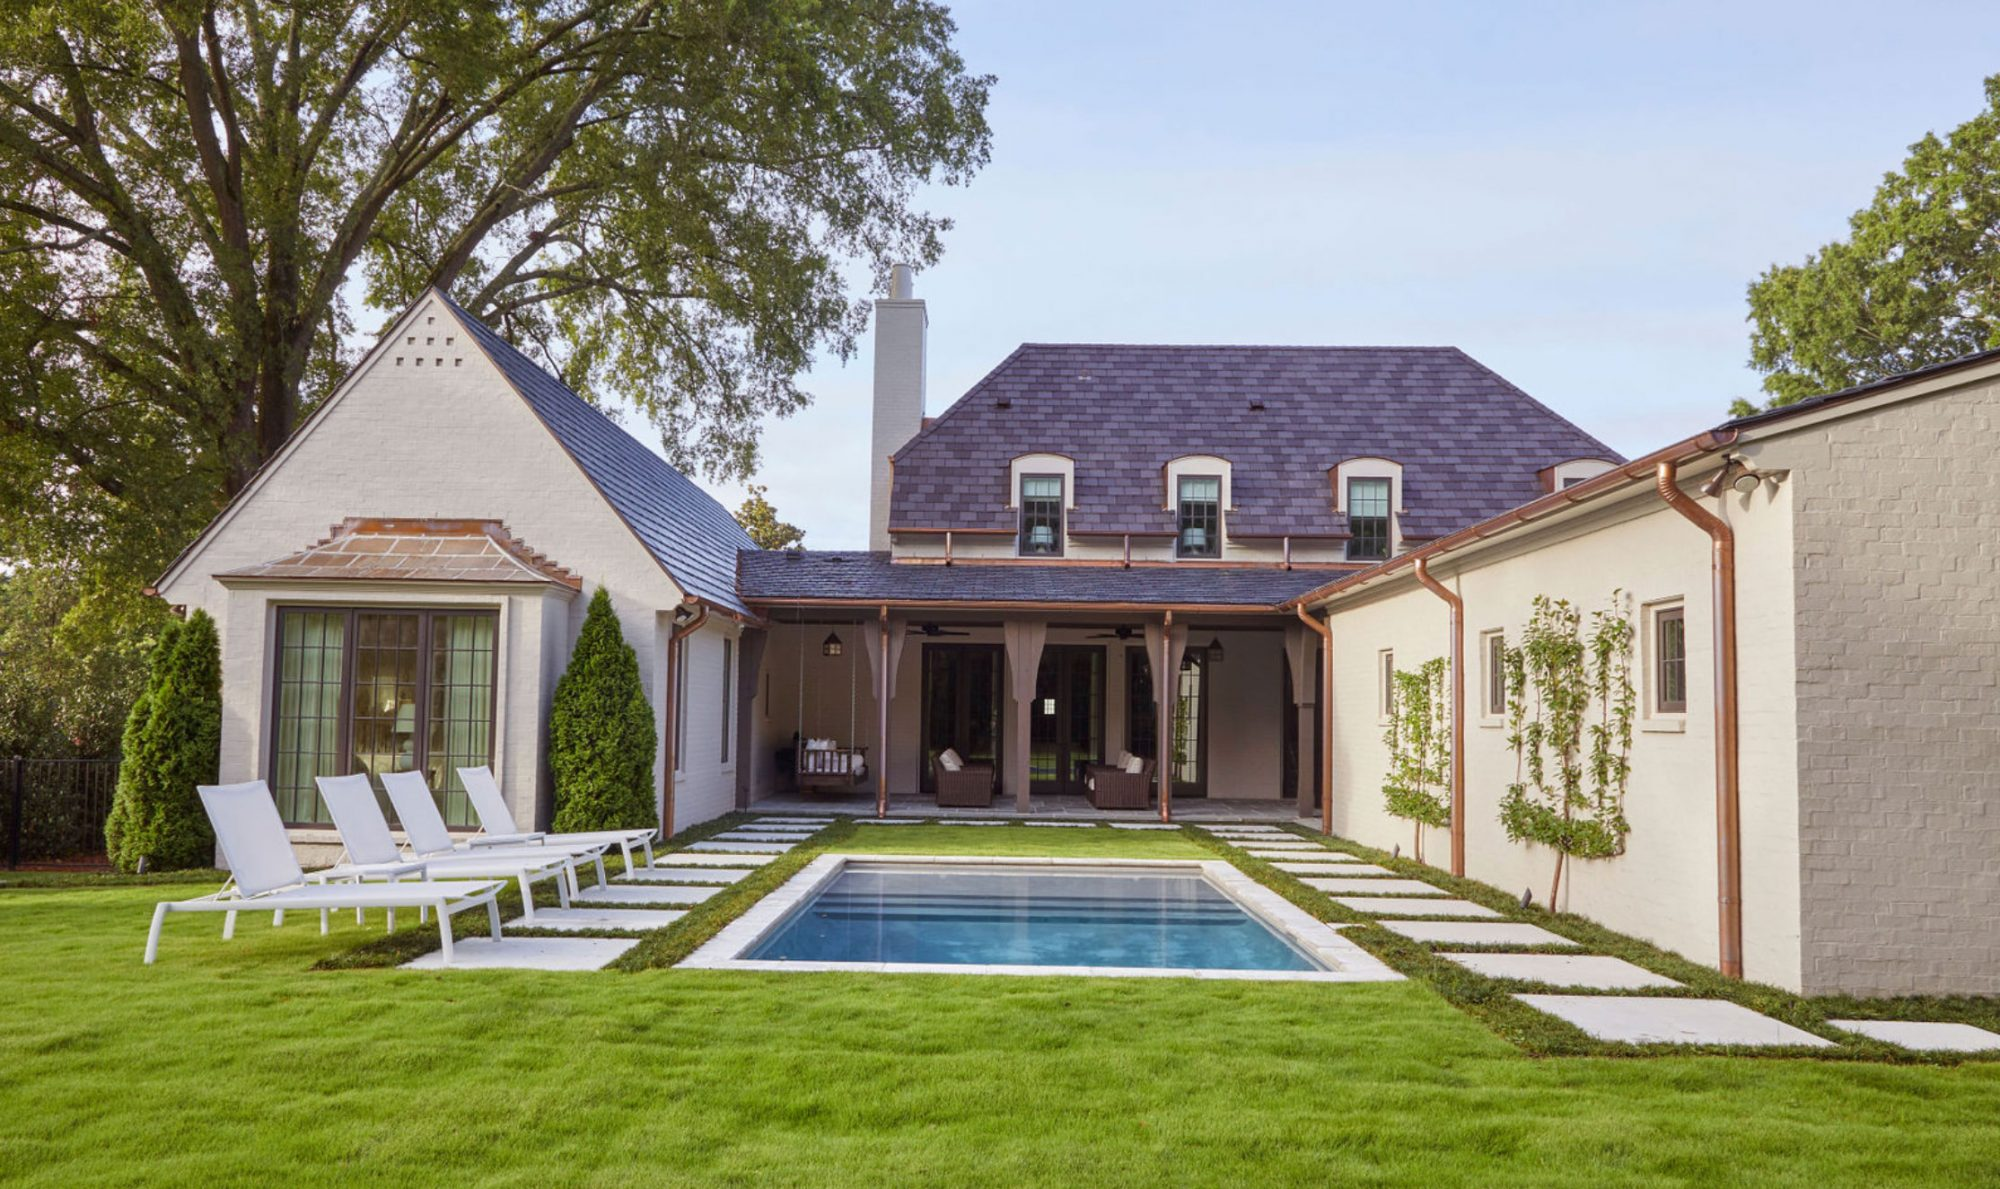 Rectangular Pool Behind House with Grass and Stepping Stones